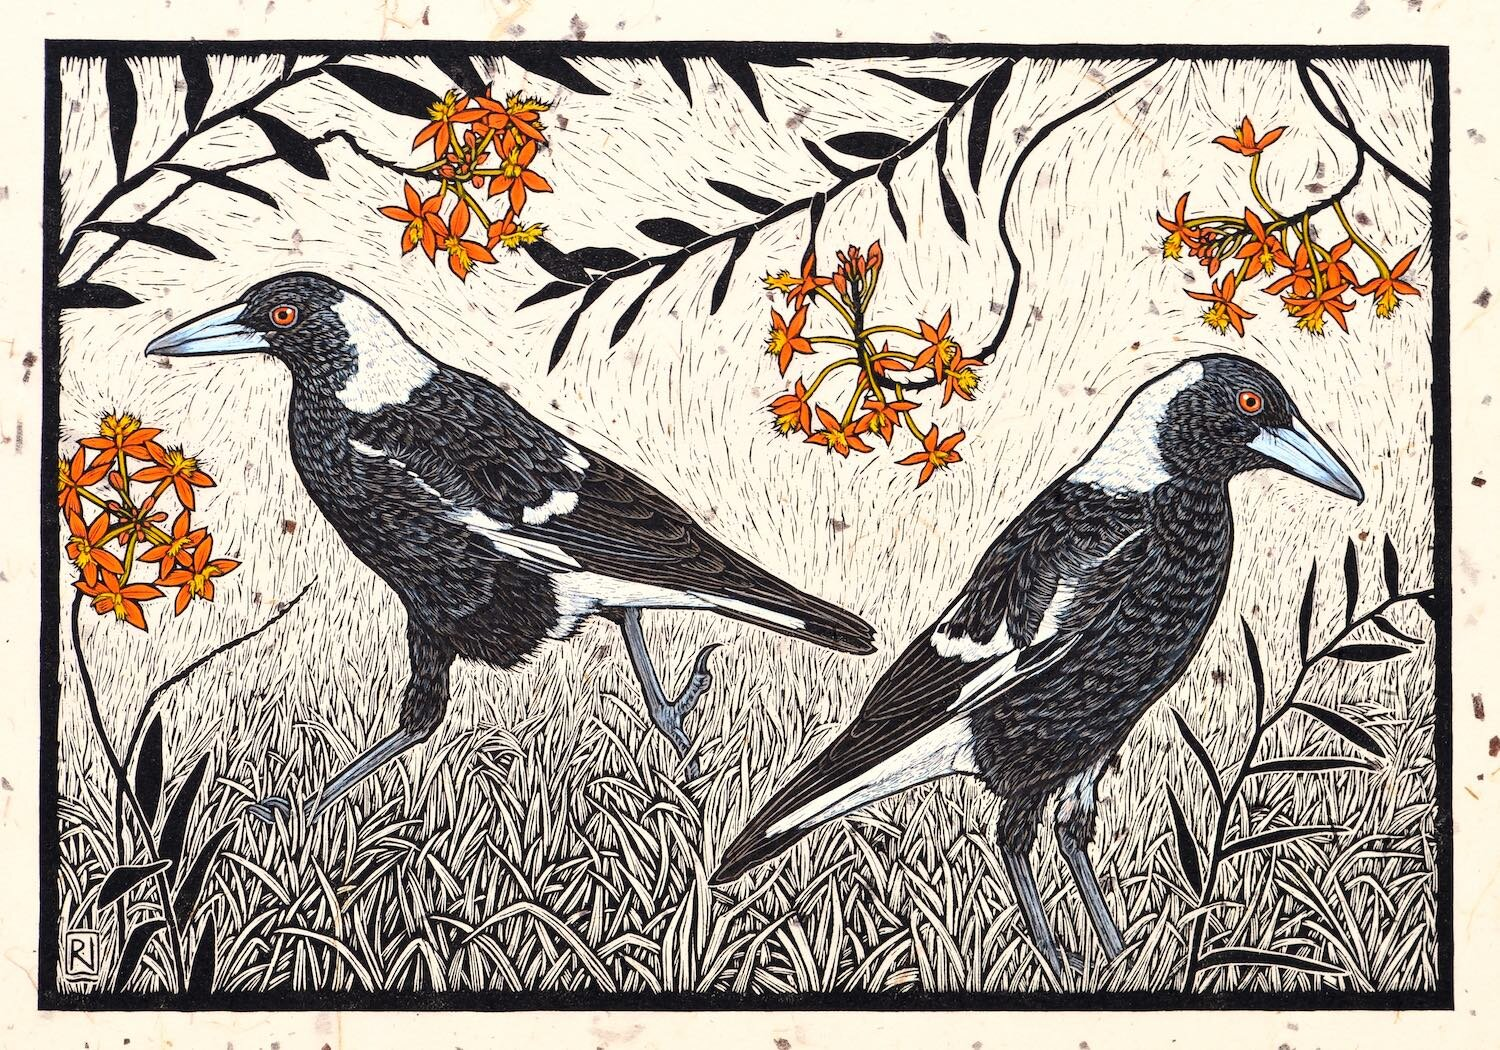 Magpie and Crucifix Orchid  38.5 x 56 cm, Edition of 50  Hand-coloured linocut on handmade Japanese paper  $1,100